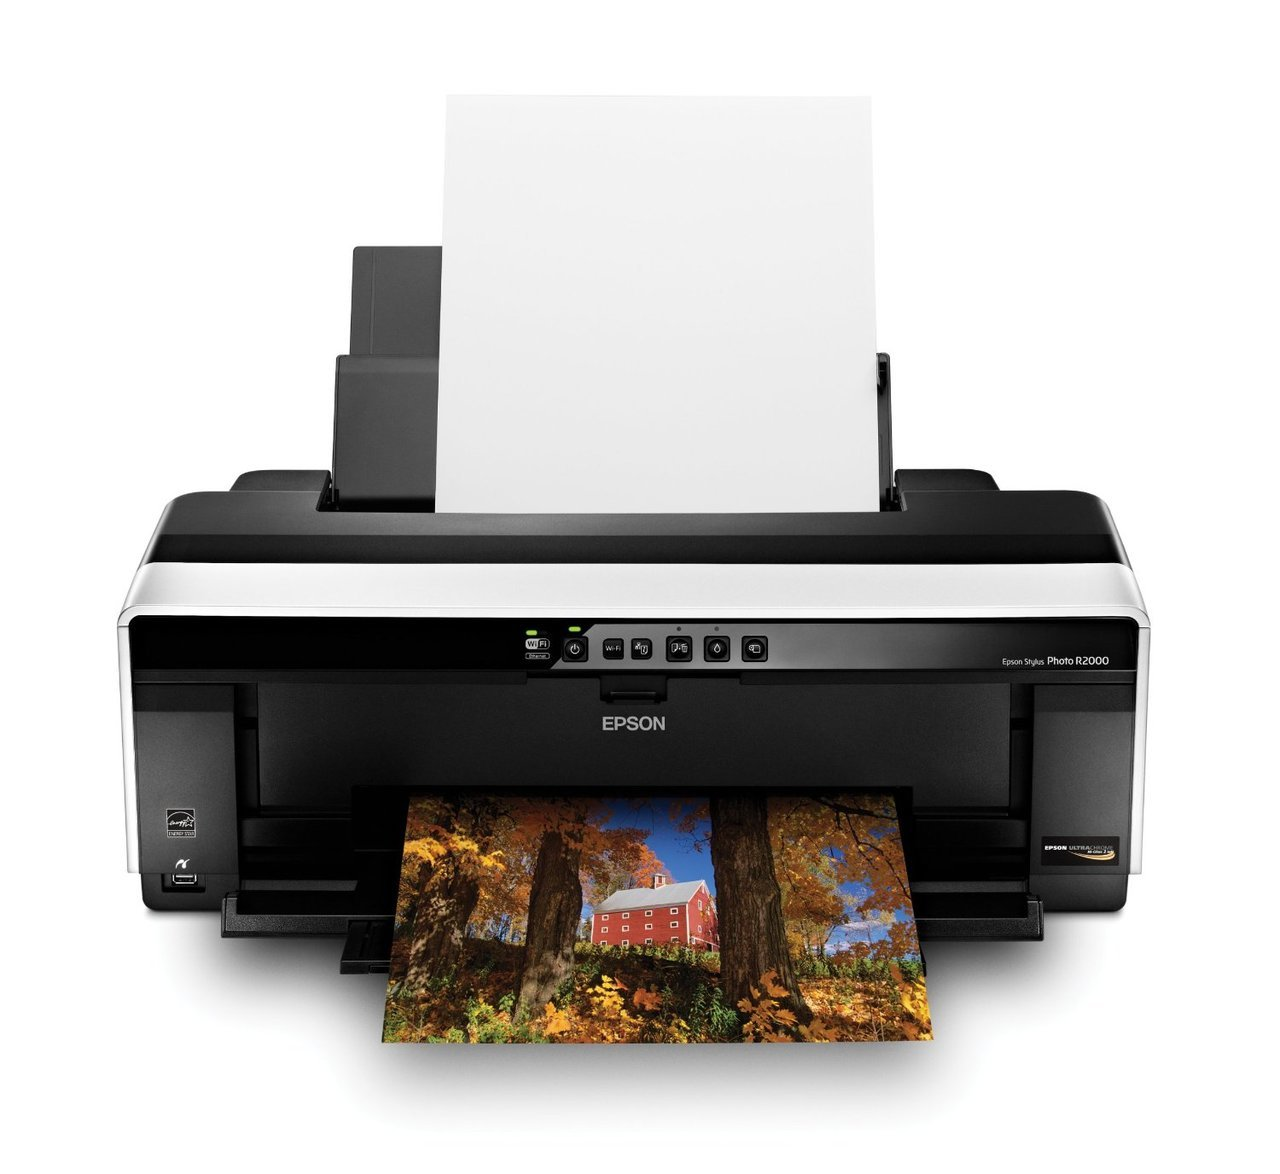 Outstanding Epson Stylus Photo Wireless Color Inkjet Epson Stylus Photo Wireless Color Inkjet Epson Stylus Photo R2000 Price Epson Stylus Photo R2000 Ink dpreview Epson Stylus Photo R2000